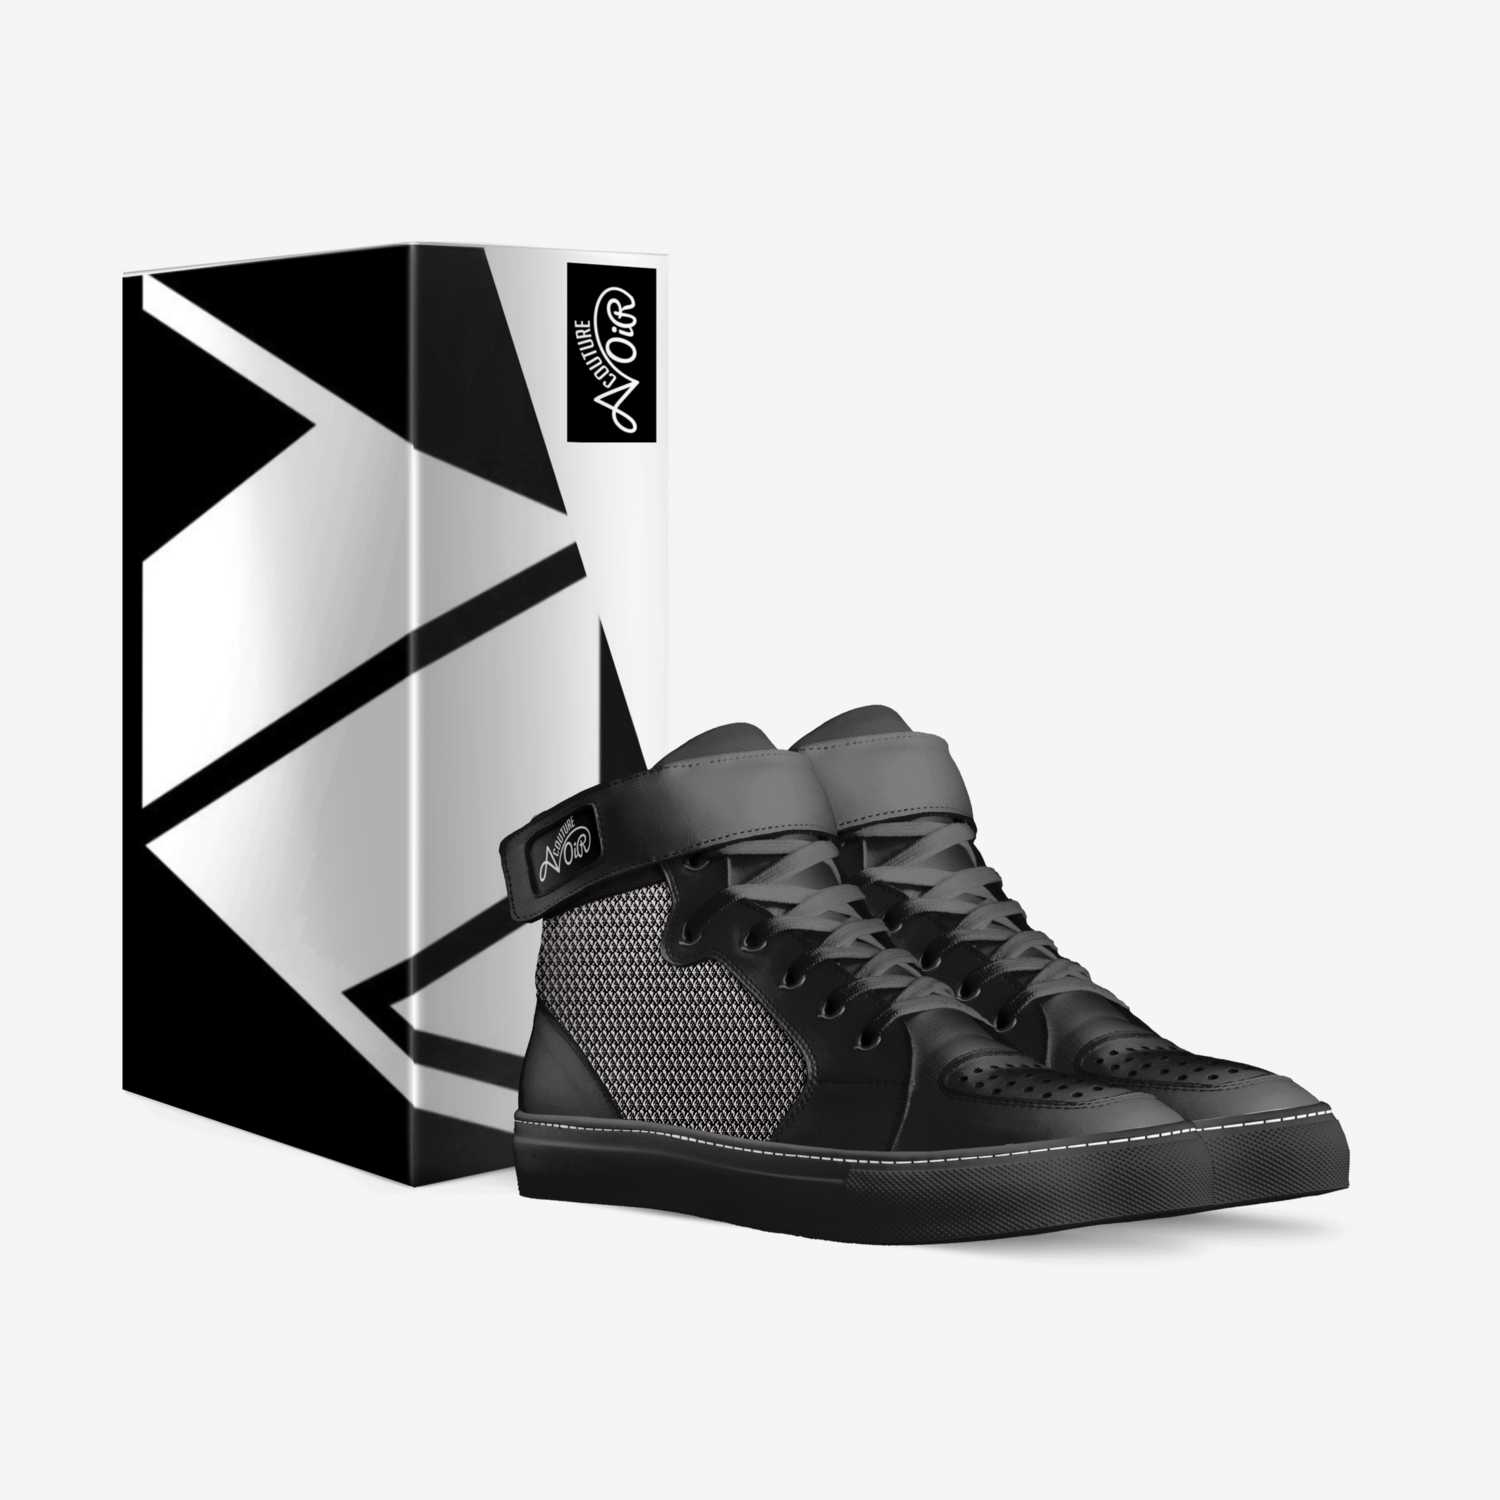 Avoir custom made in Italy shoes by Lamont Crooks | Box view